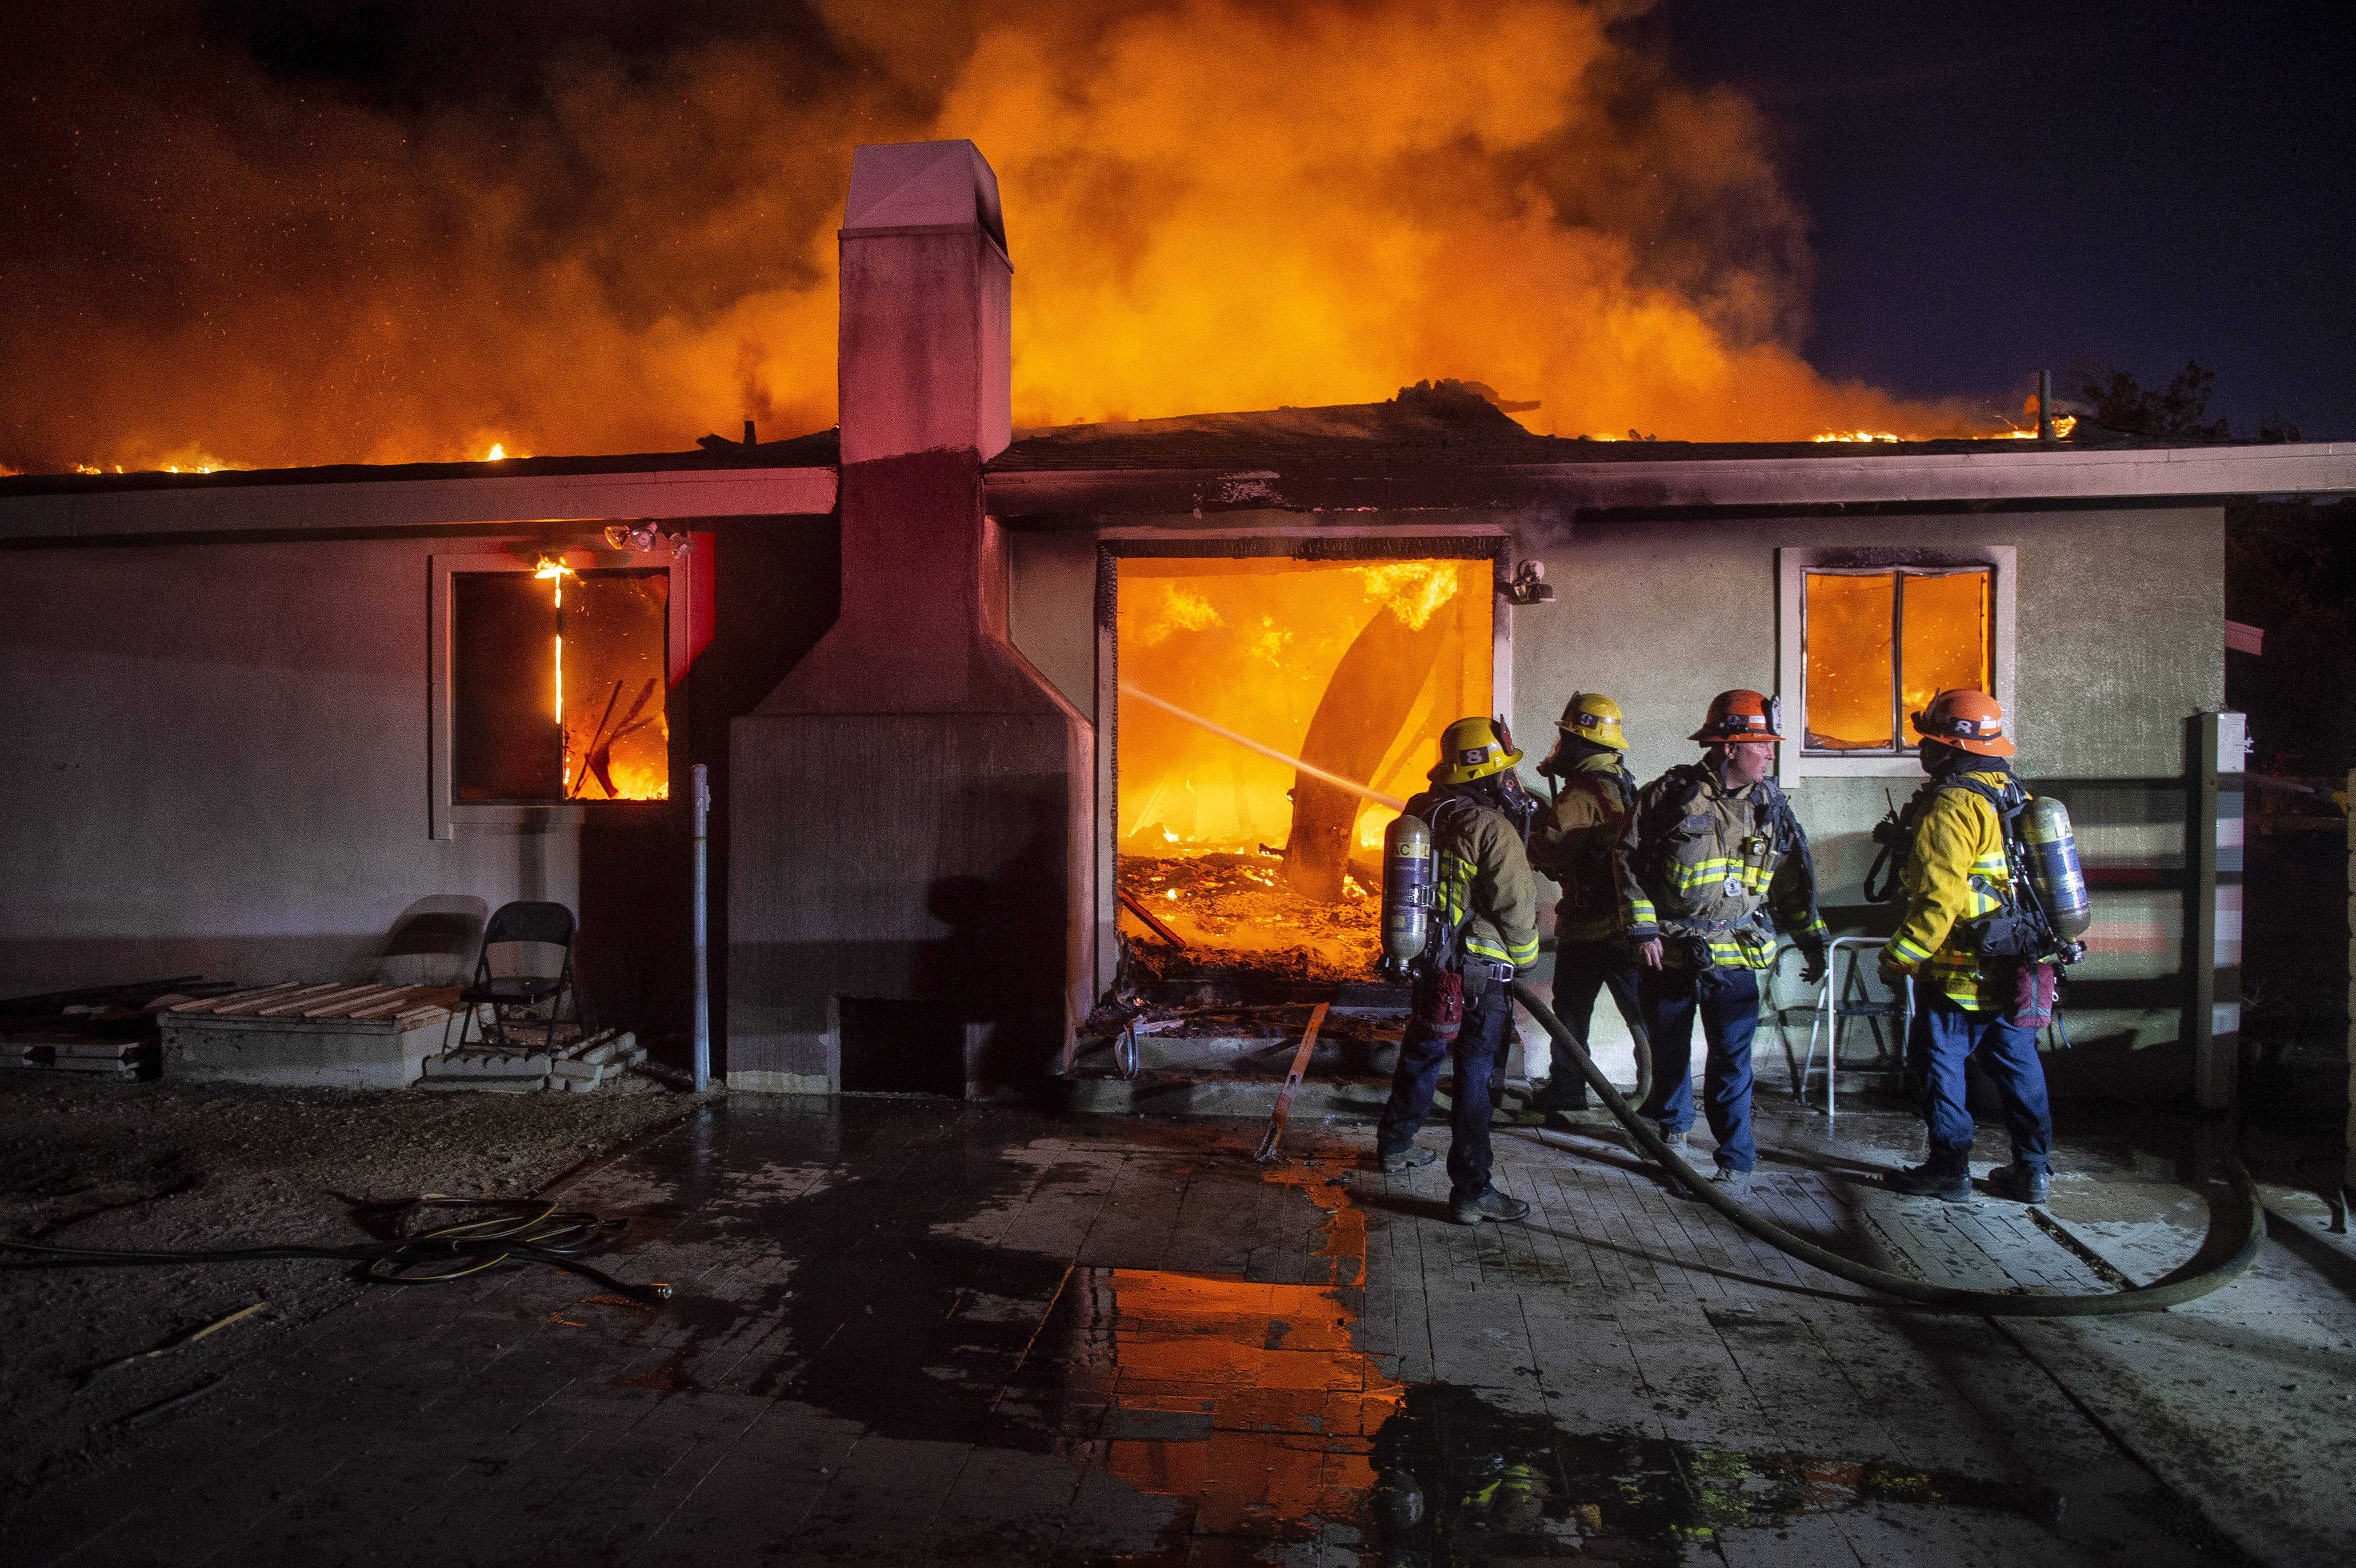 Firefighters outside a burning home.